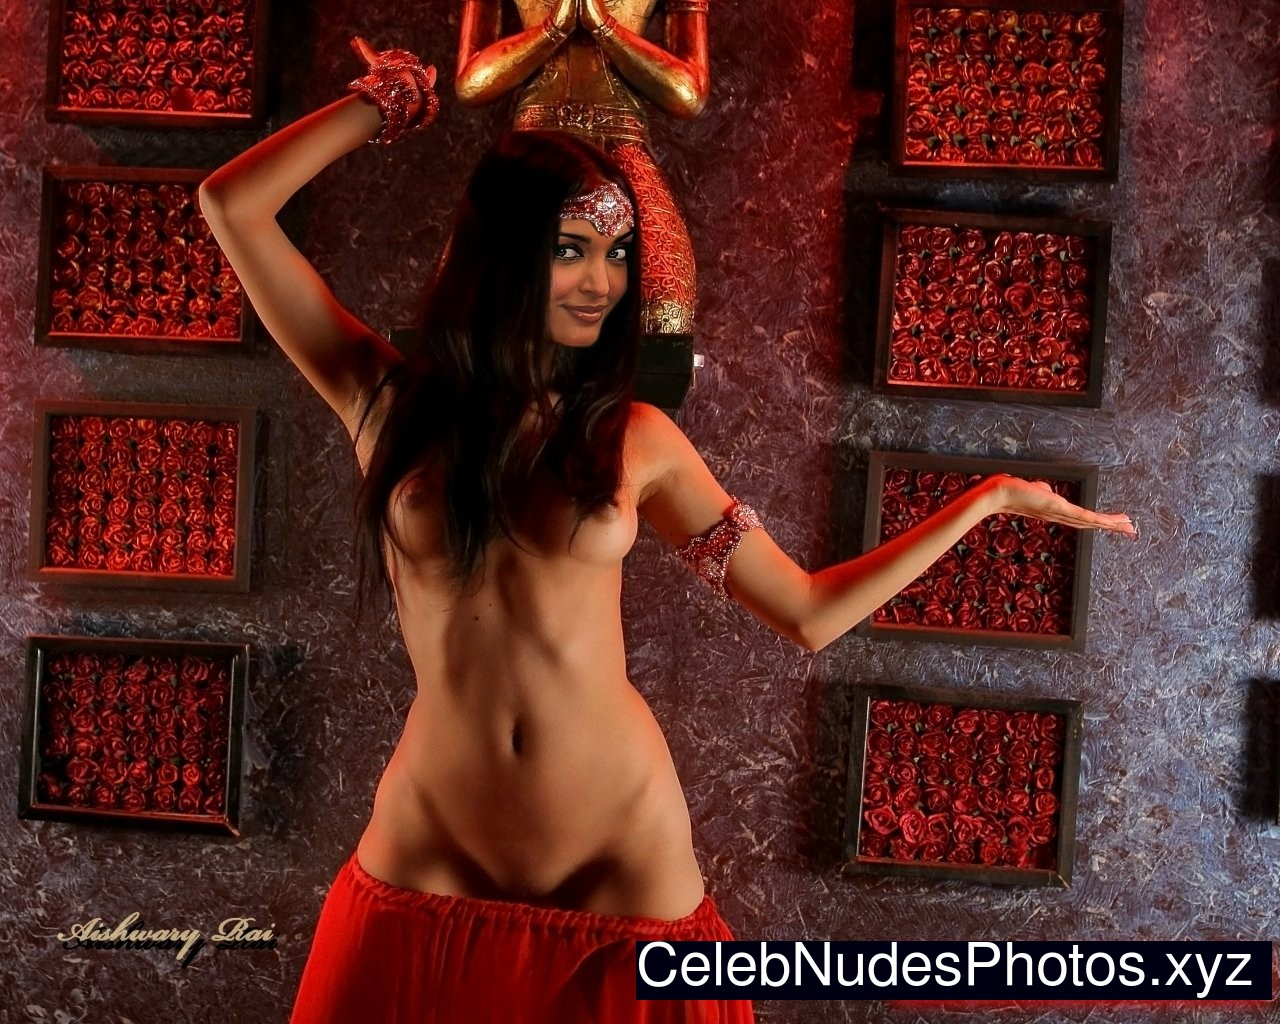 Aishwarya Rai naked celebrities